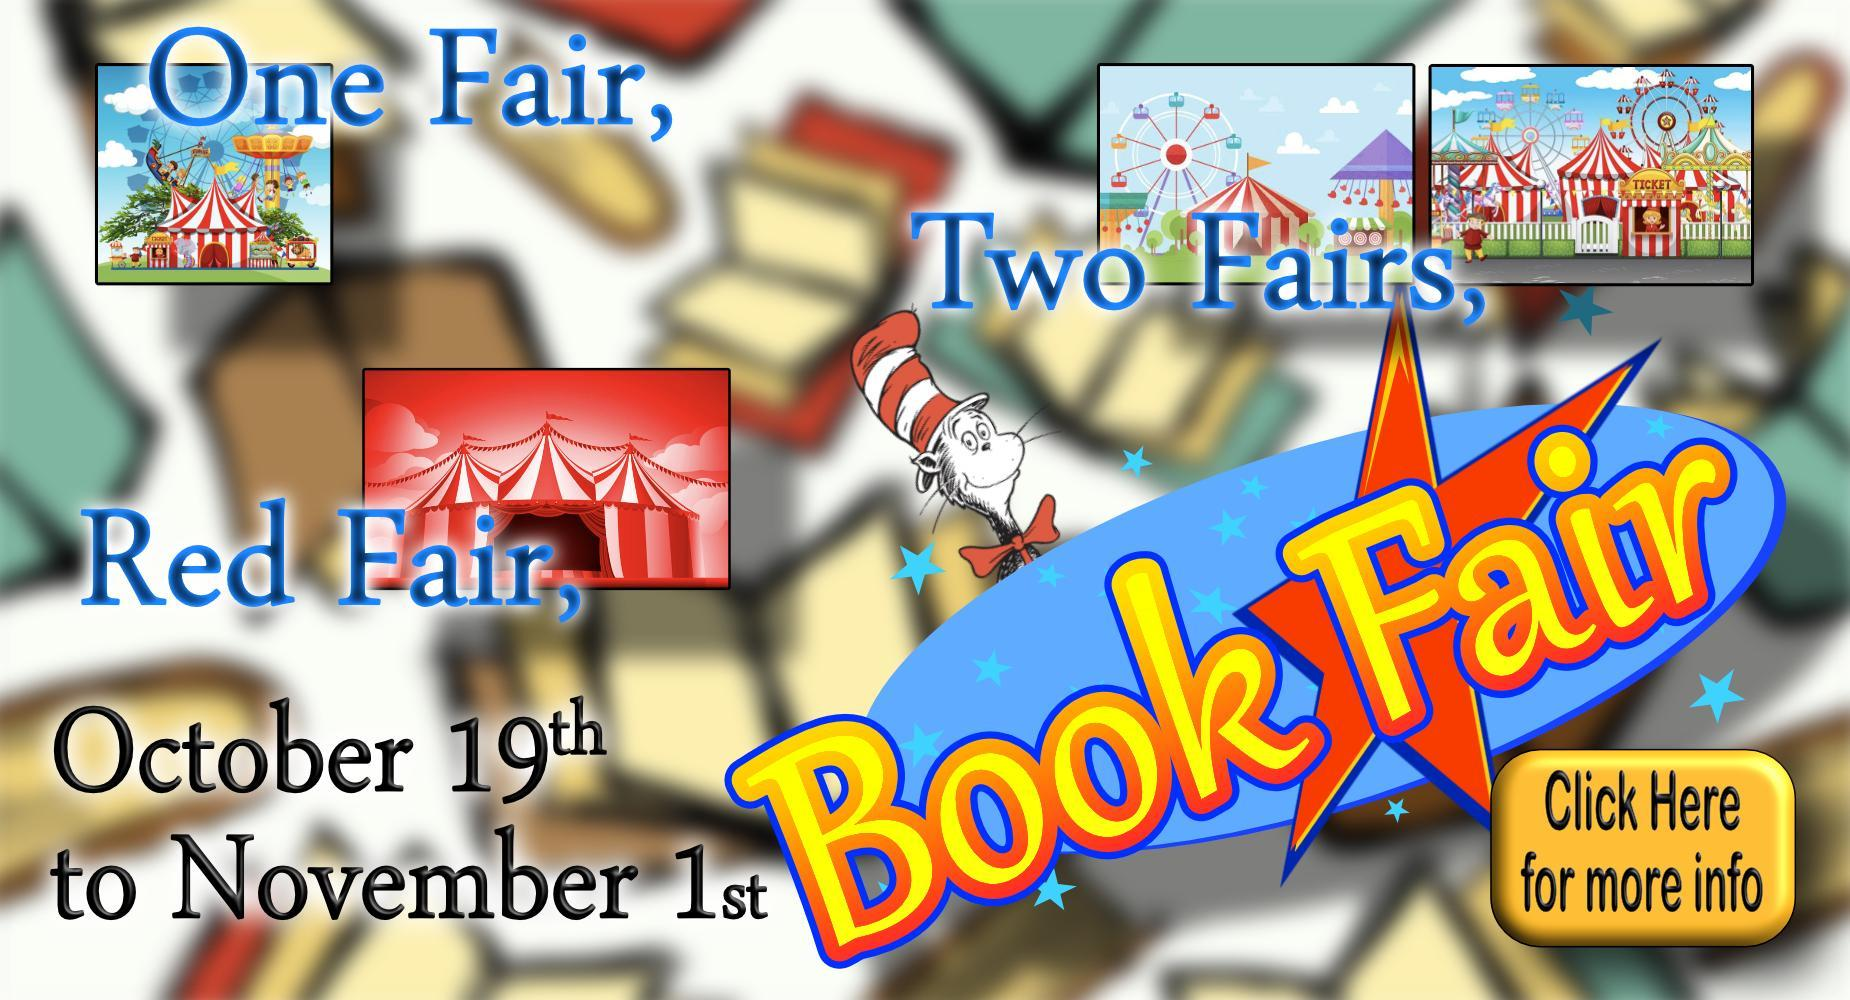 Centennial Book Fair